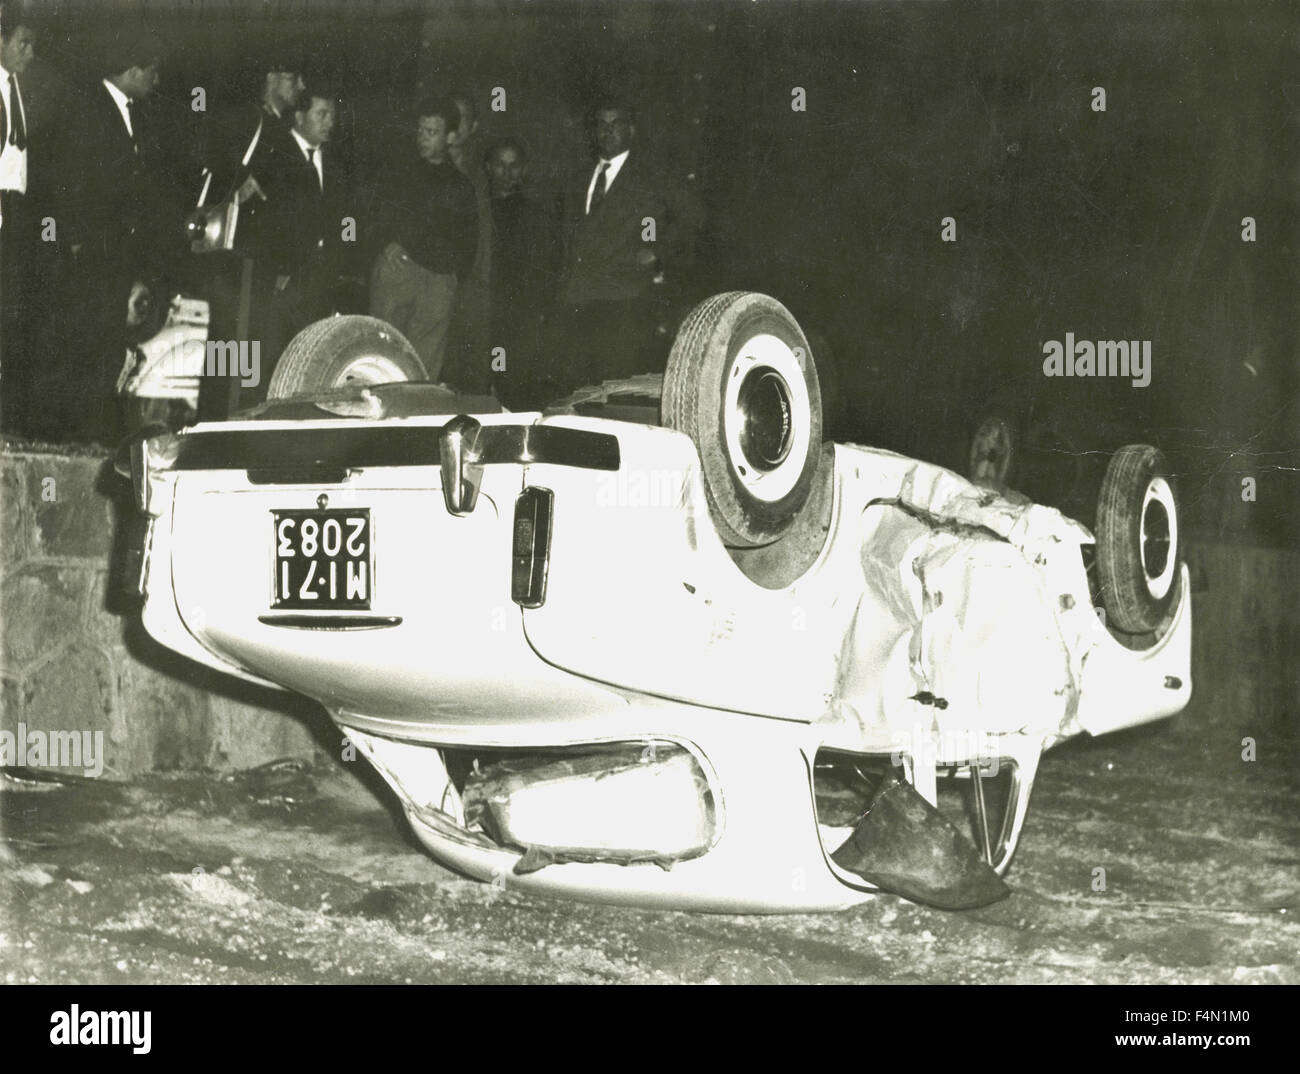 Car upside down after accident, Italy - Stock Image